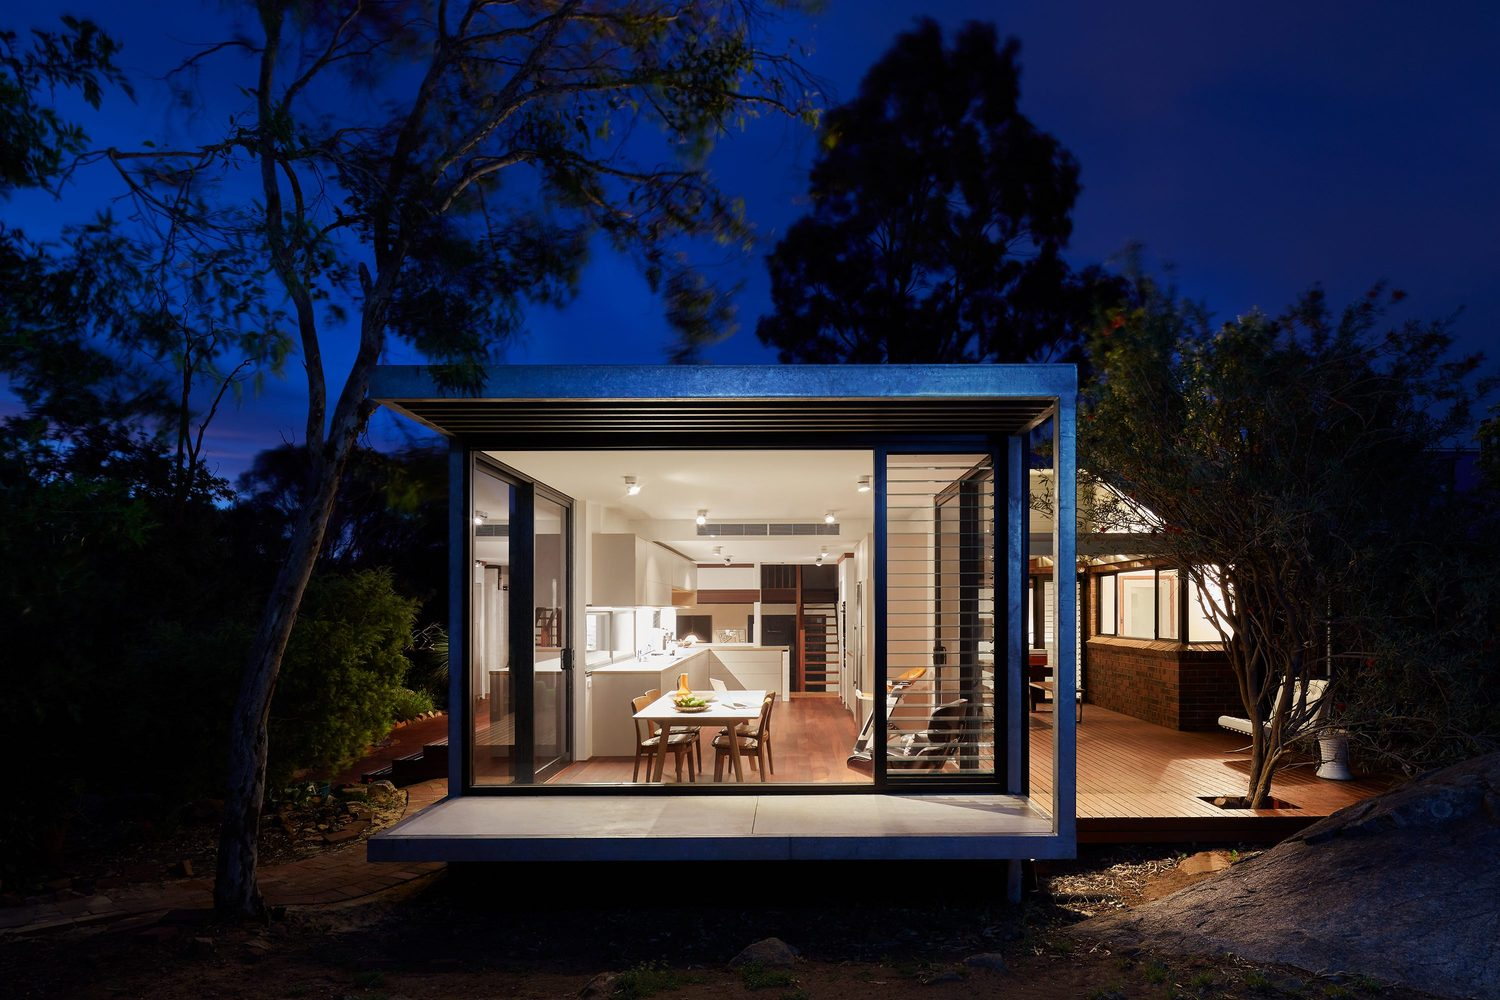 A New Glass Box Protrudes to Transport this Family into the Landscape